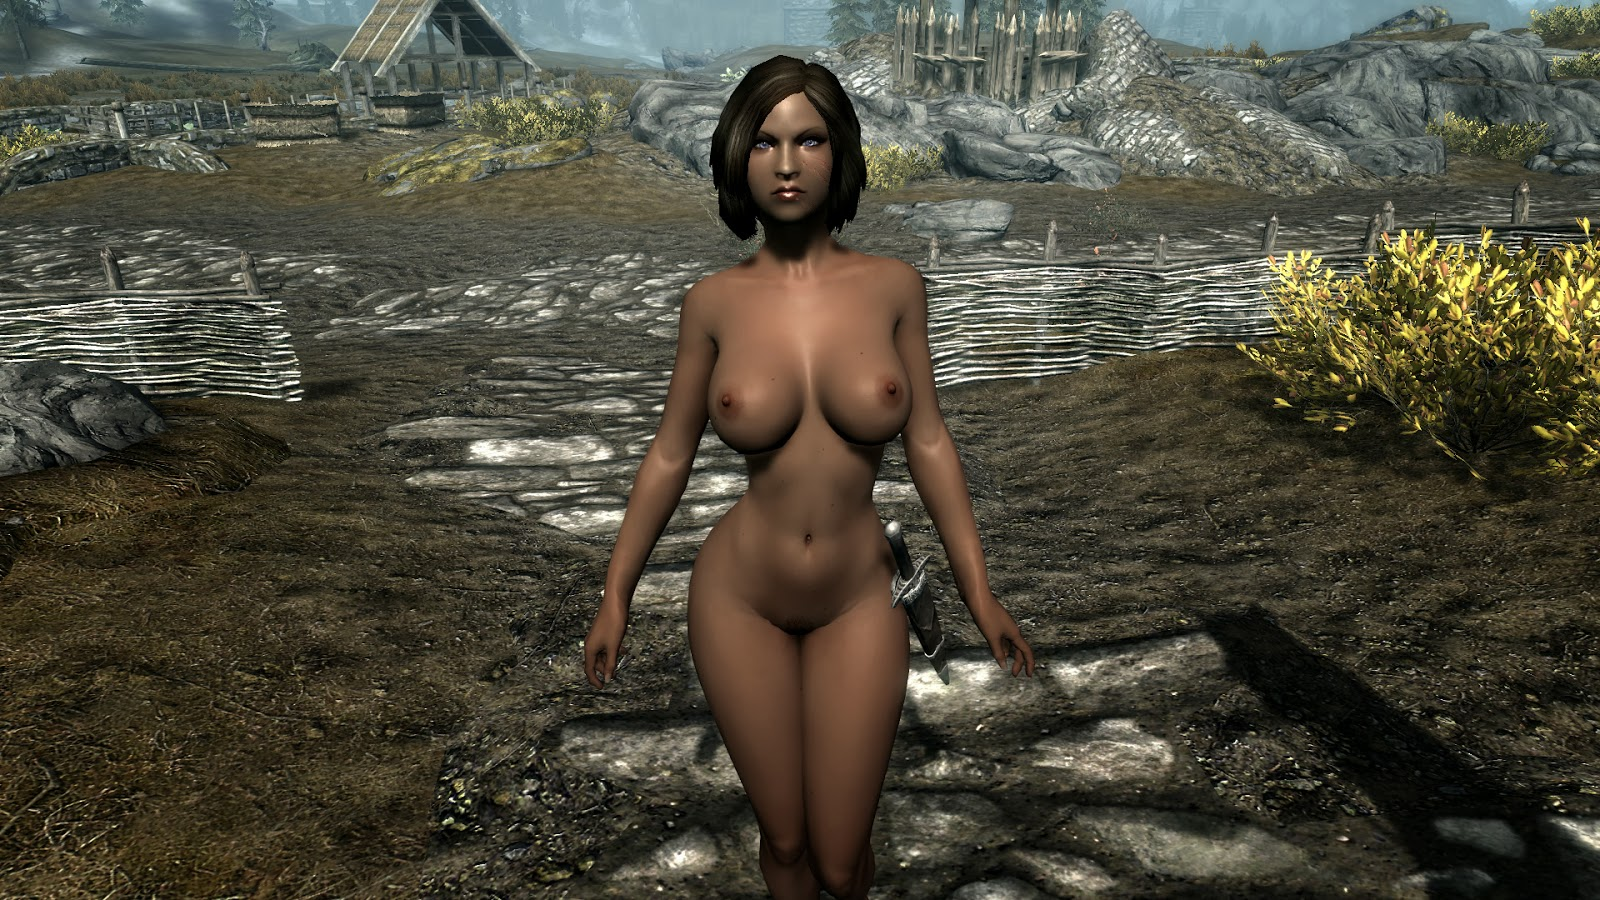 Download nude skin game naked pictures